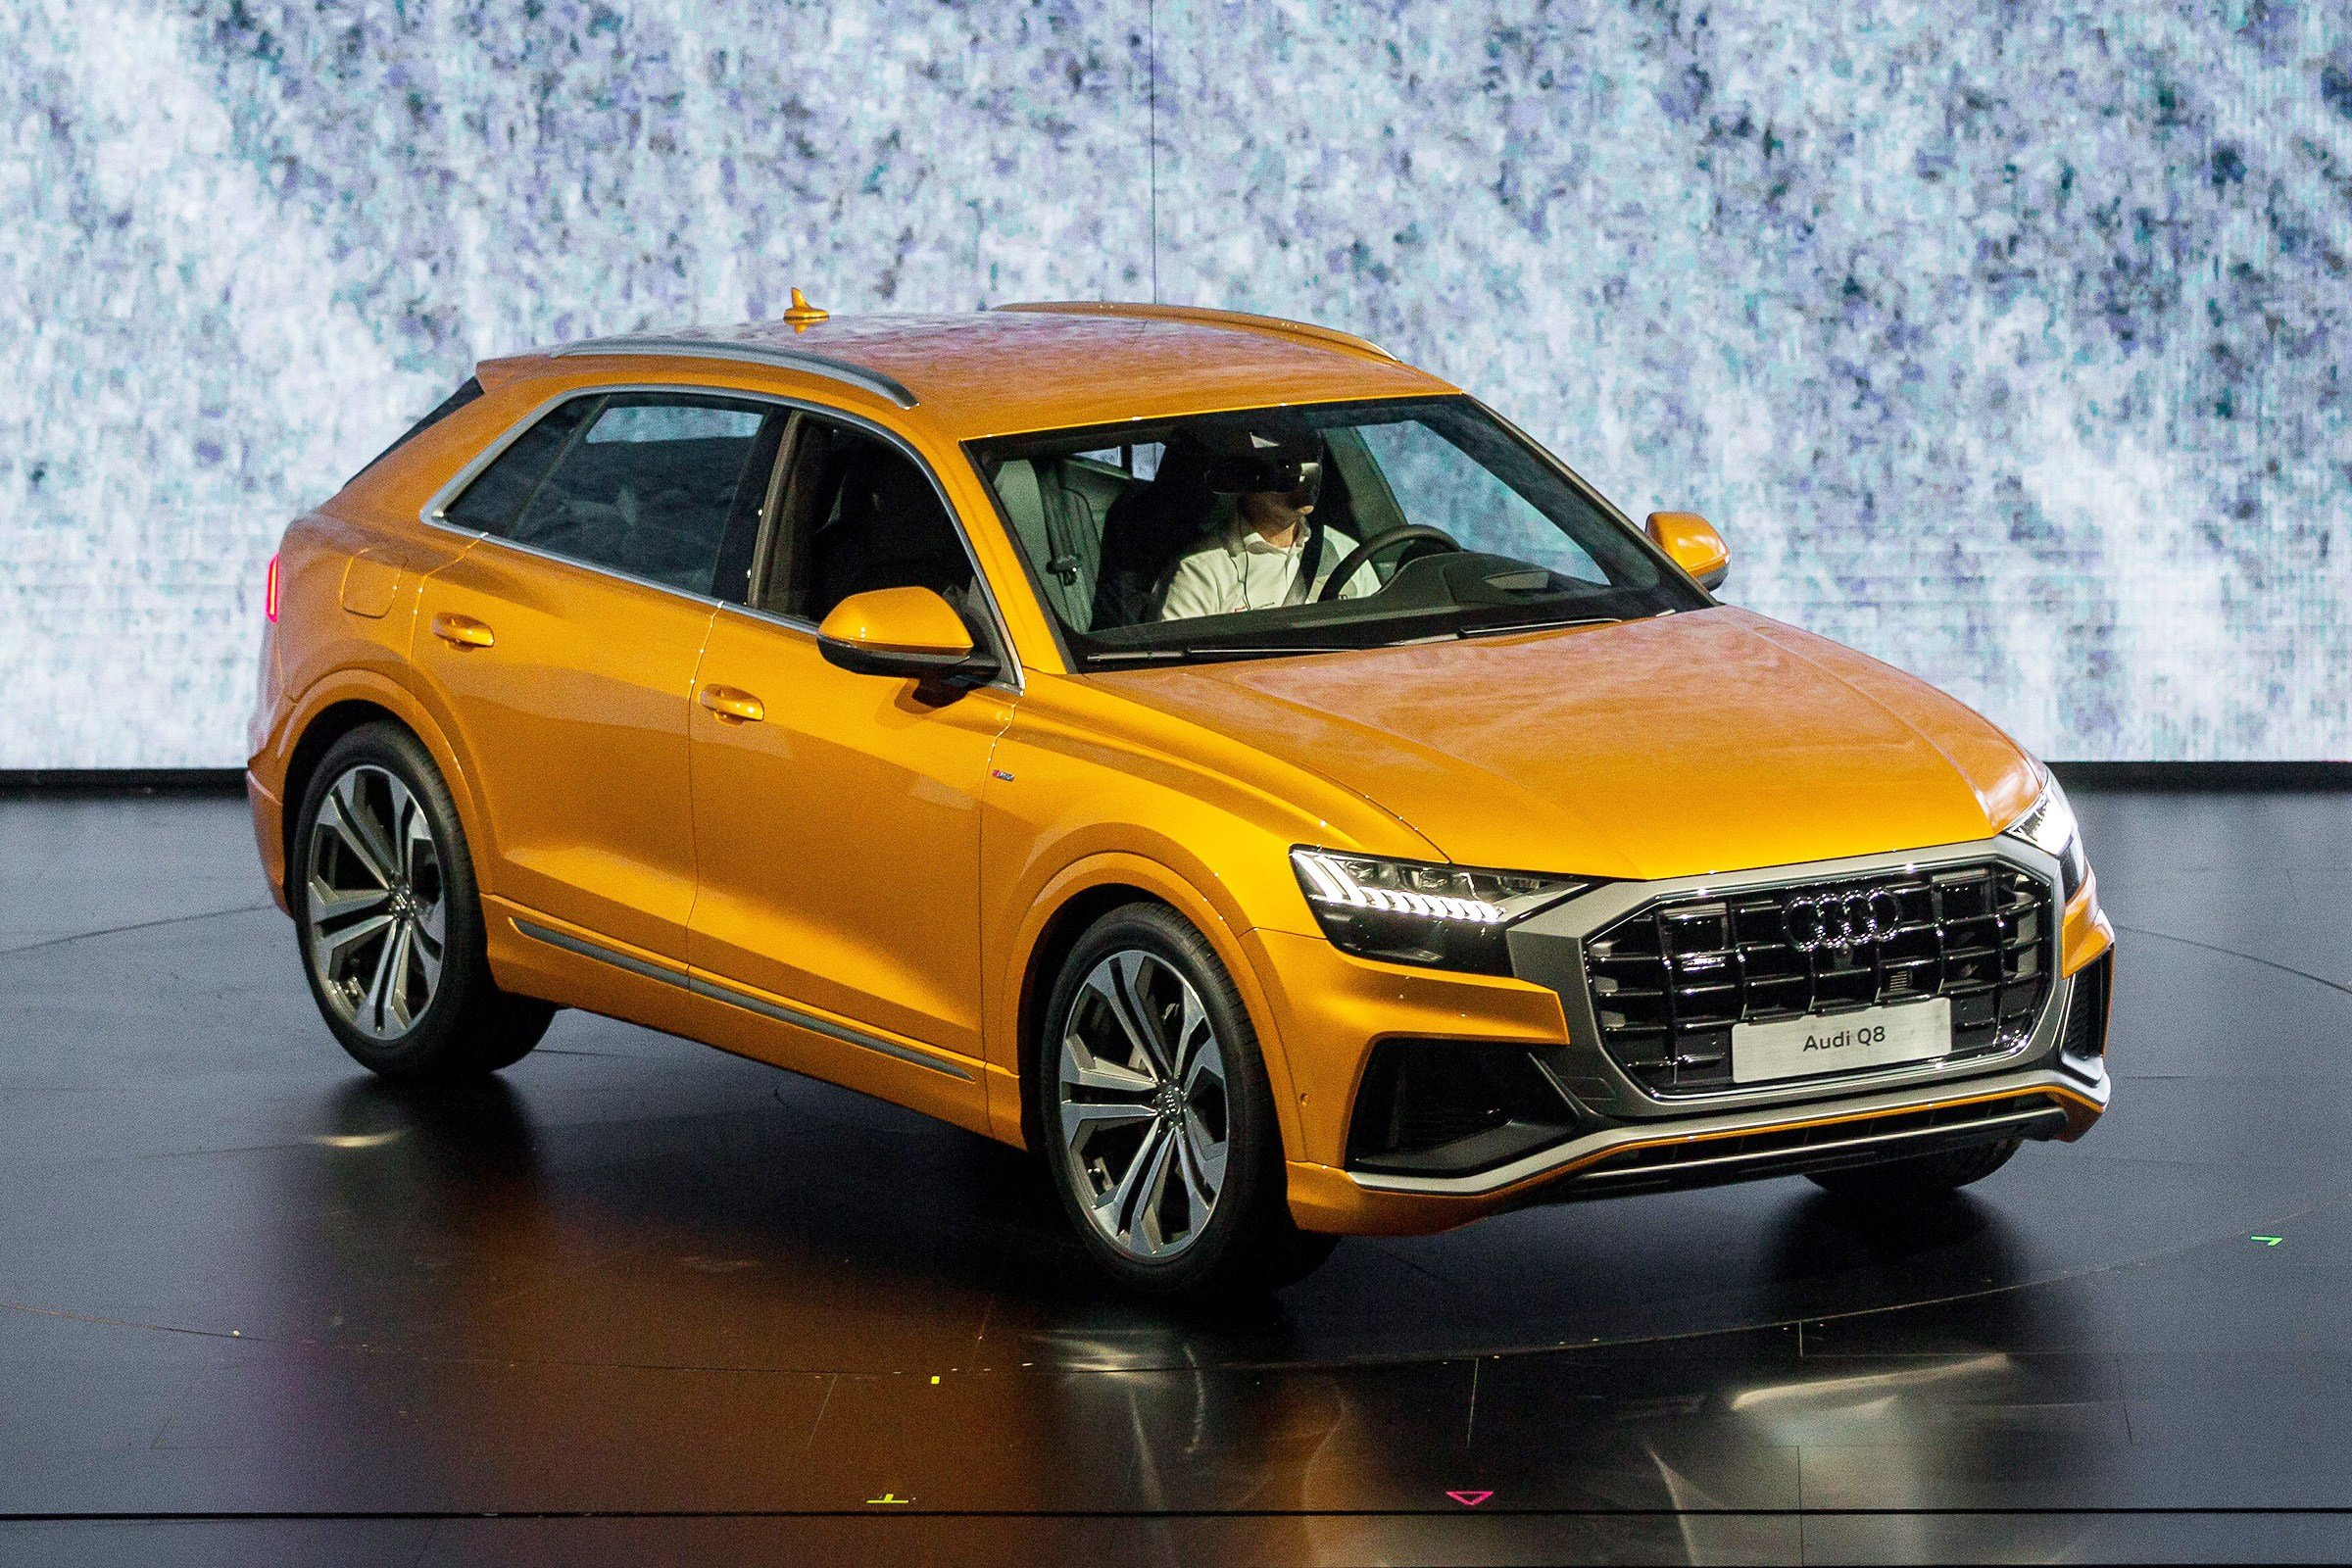 Latest New 2018 Audi Q8 Suv Full Details And Official Pics Free Download